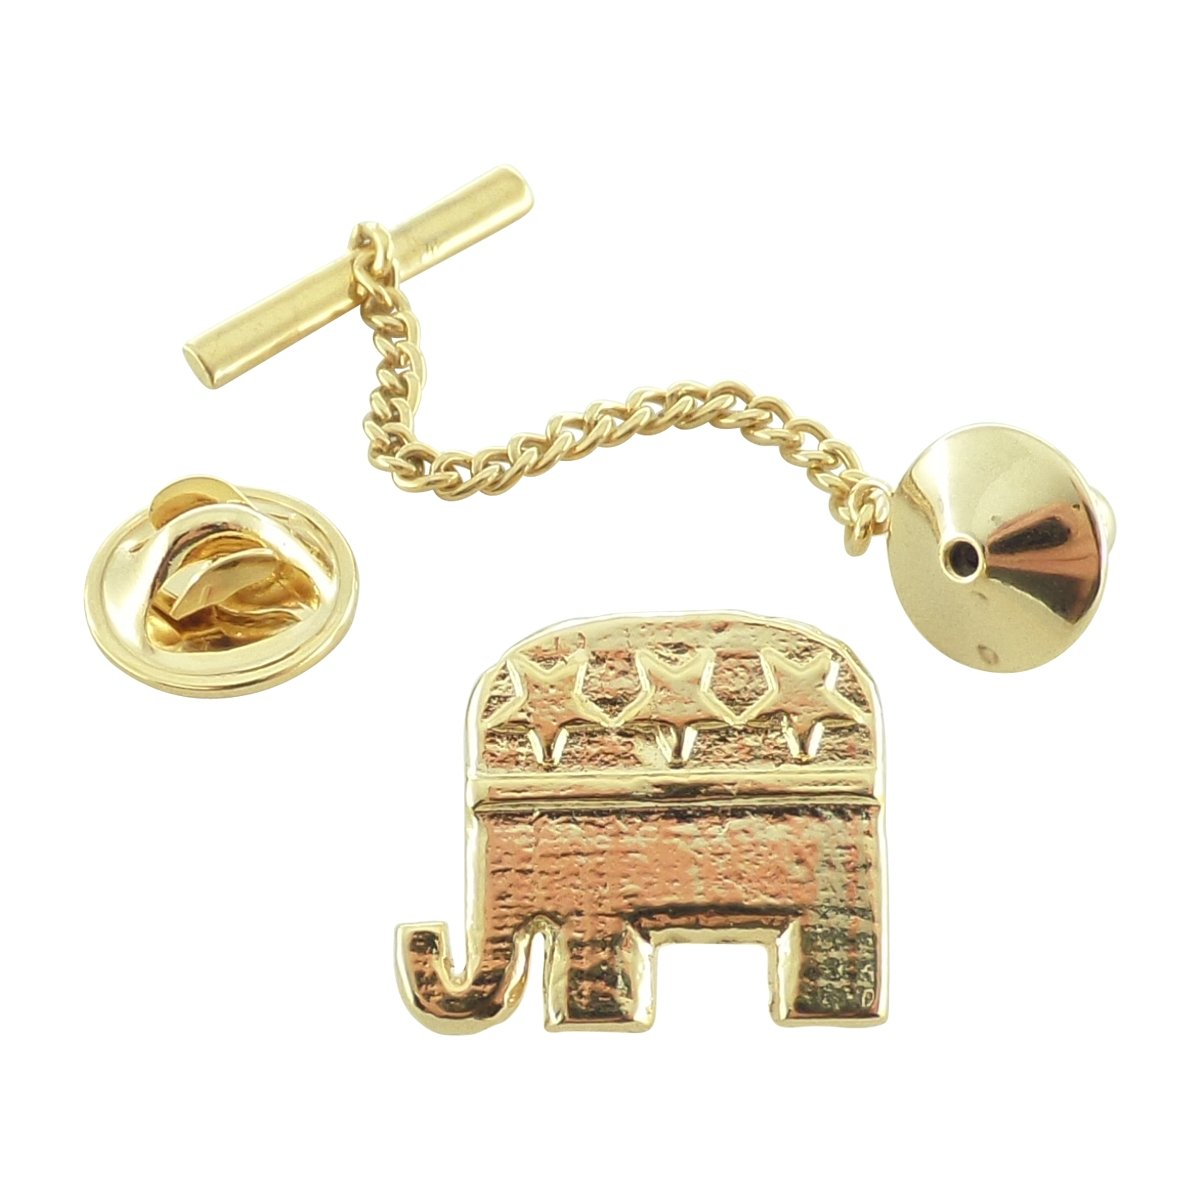 Creative Pewter Designs, Pewter Republican Elephant Tie Tack, Gold Plated, AG1030TT